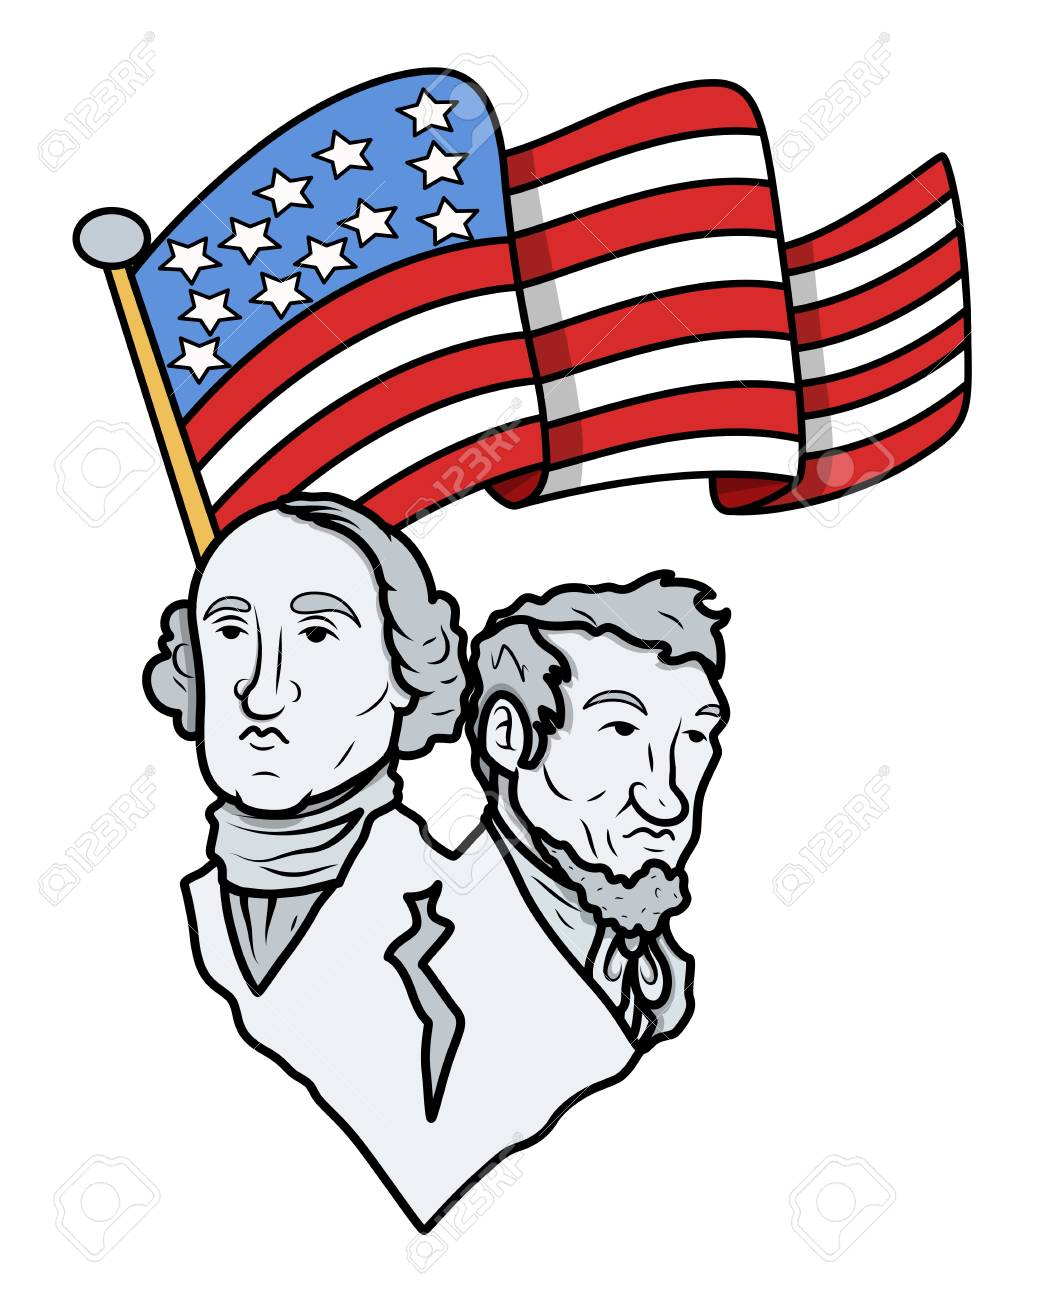 lincoln and washington with usa flag nation pride royalty free rh 123rf com abe lincoln clip art free abe lincoln clip art free